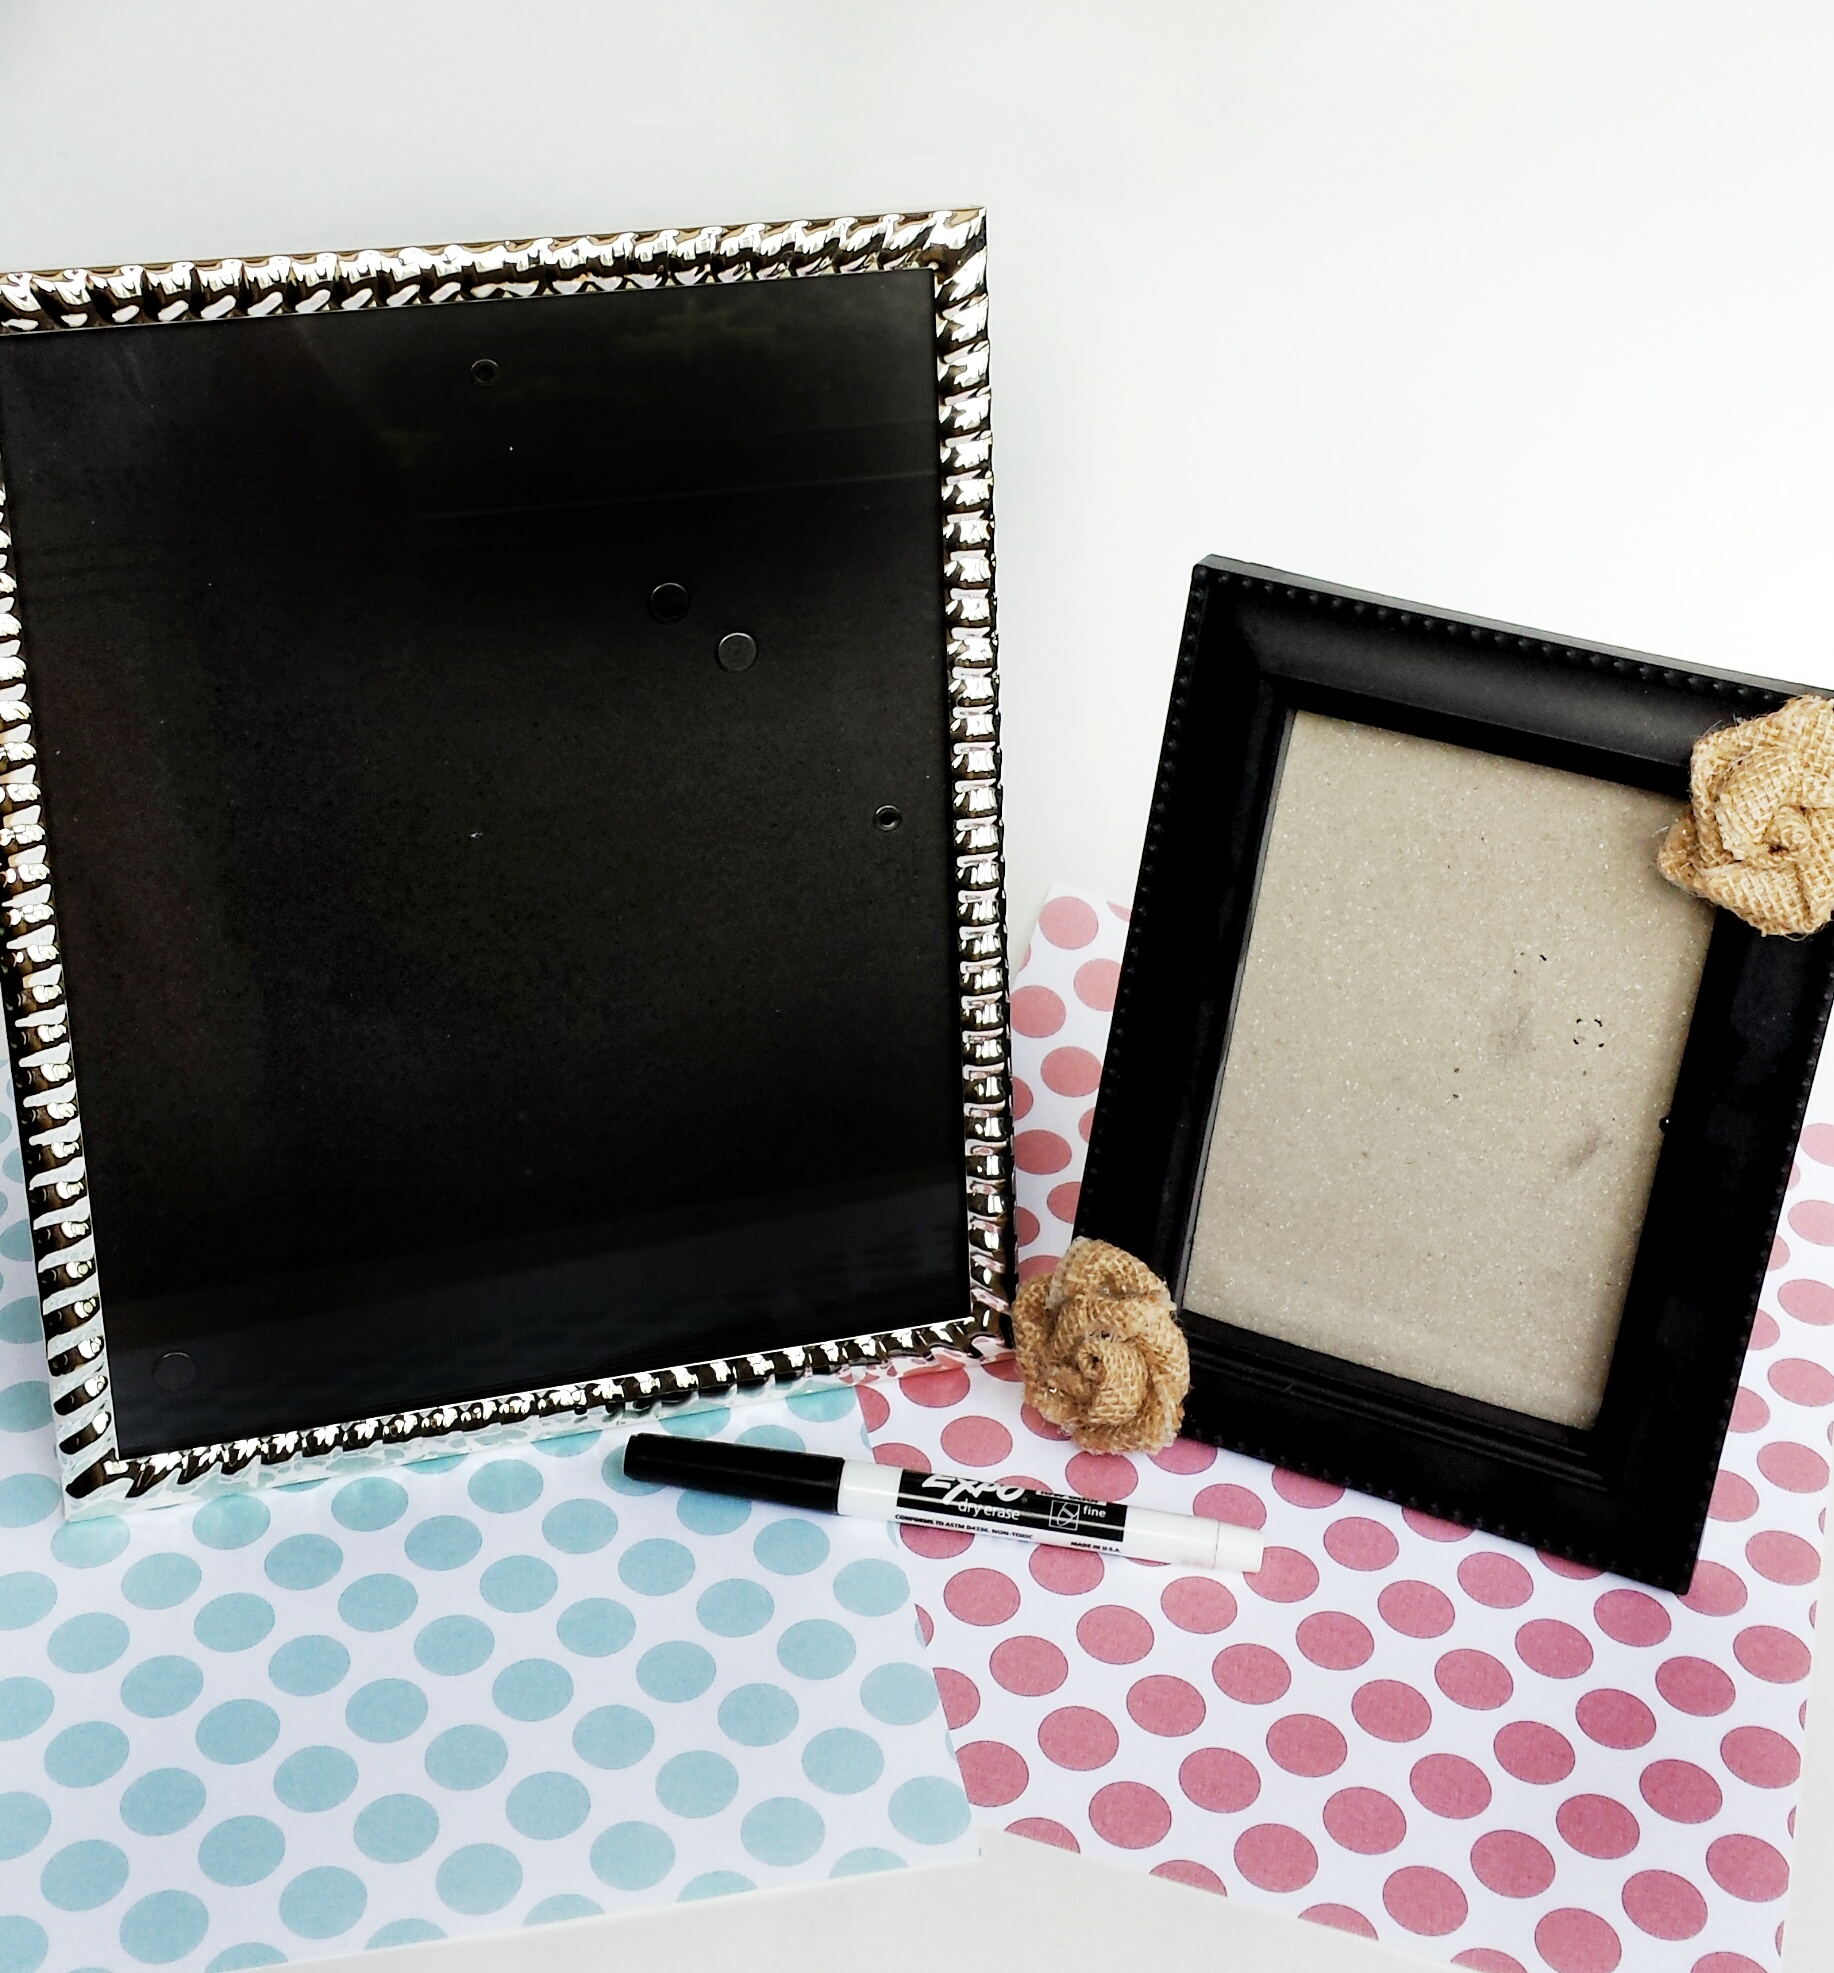 How To Make Your Own Dry Erase Frames With A Picture Frame | Create A Dry.  How To Make Your Own Dry Erase Frames With A Picture Frame | Create A Dry